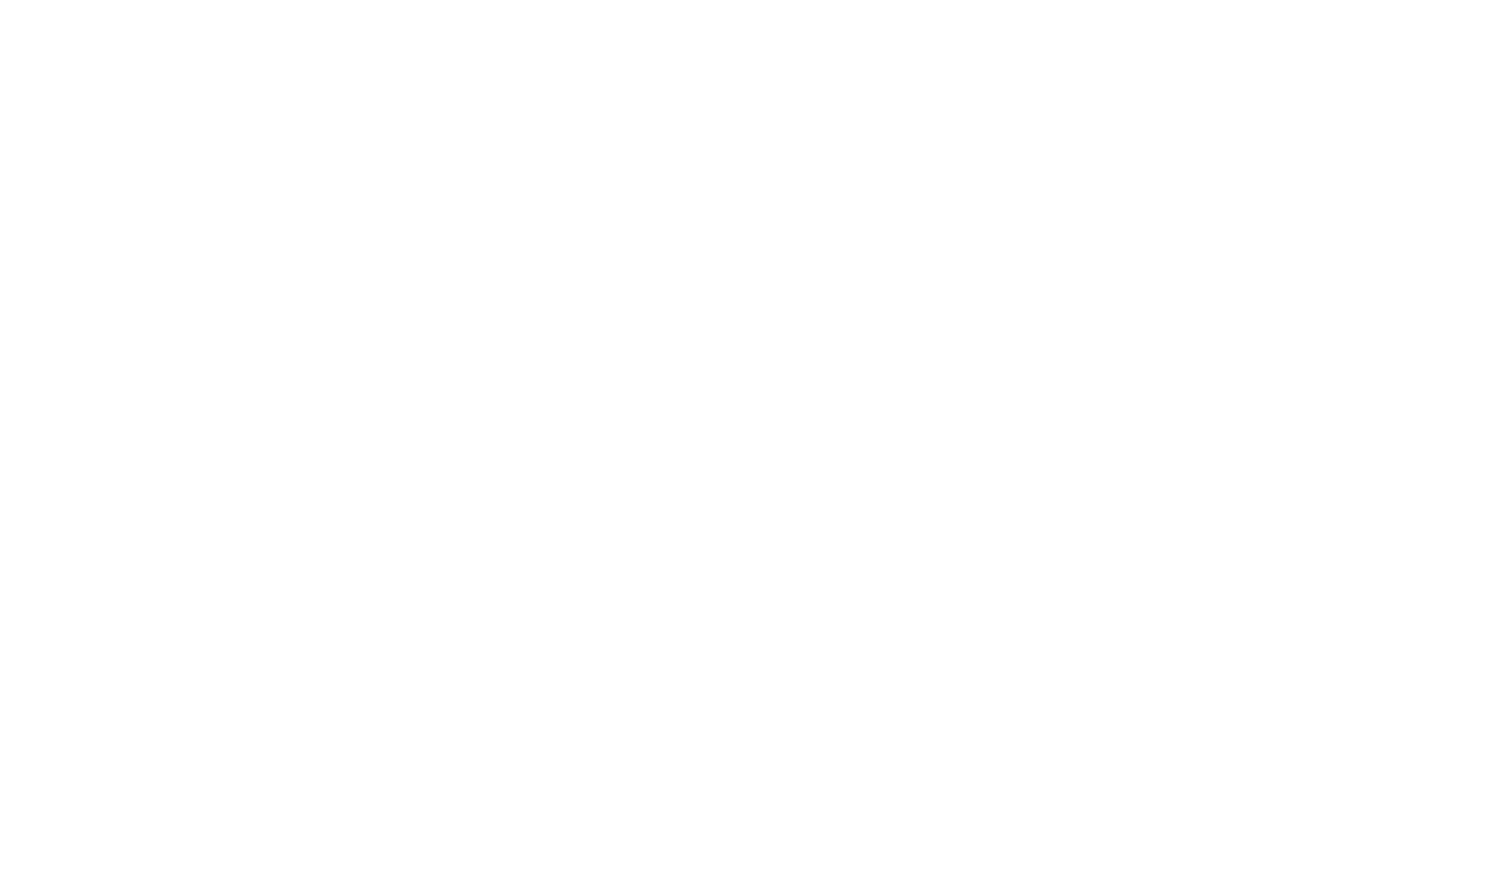 Fossil Cove Brewing Company